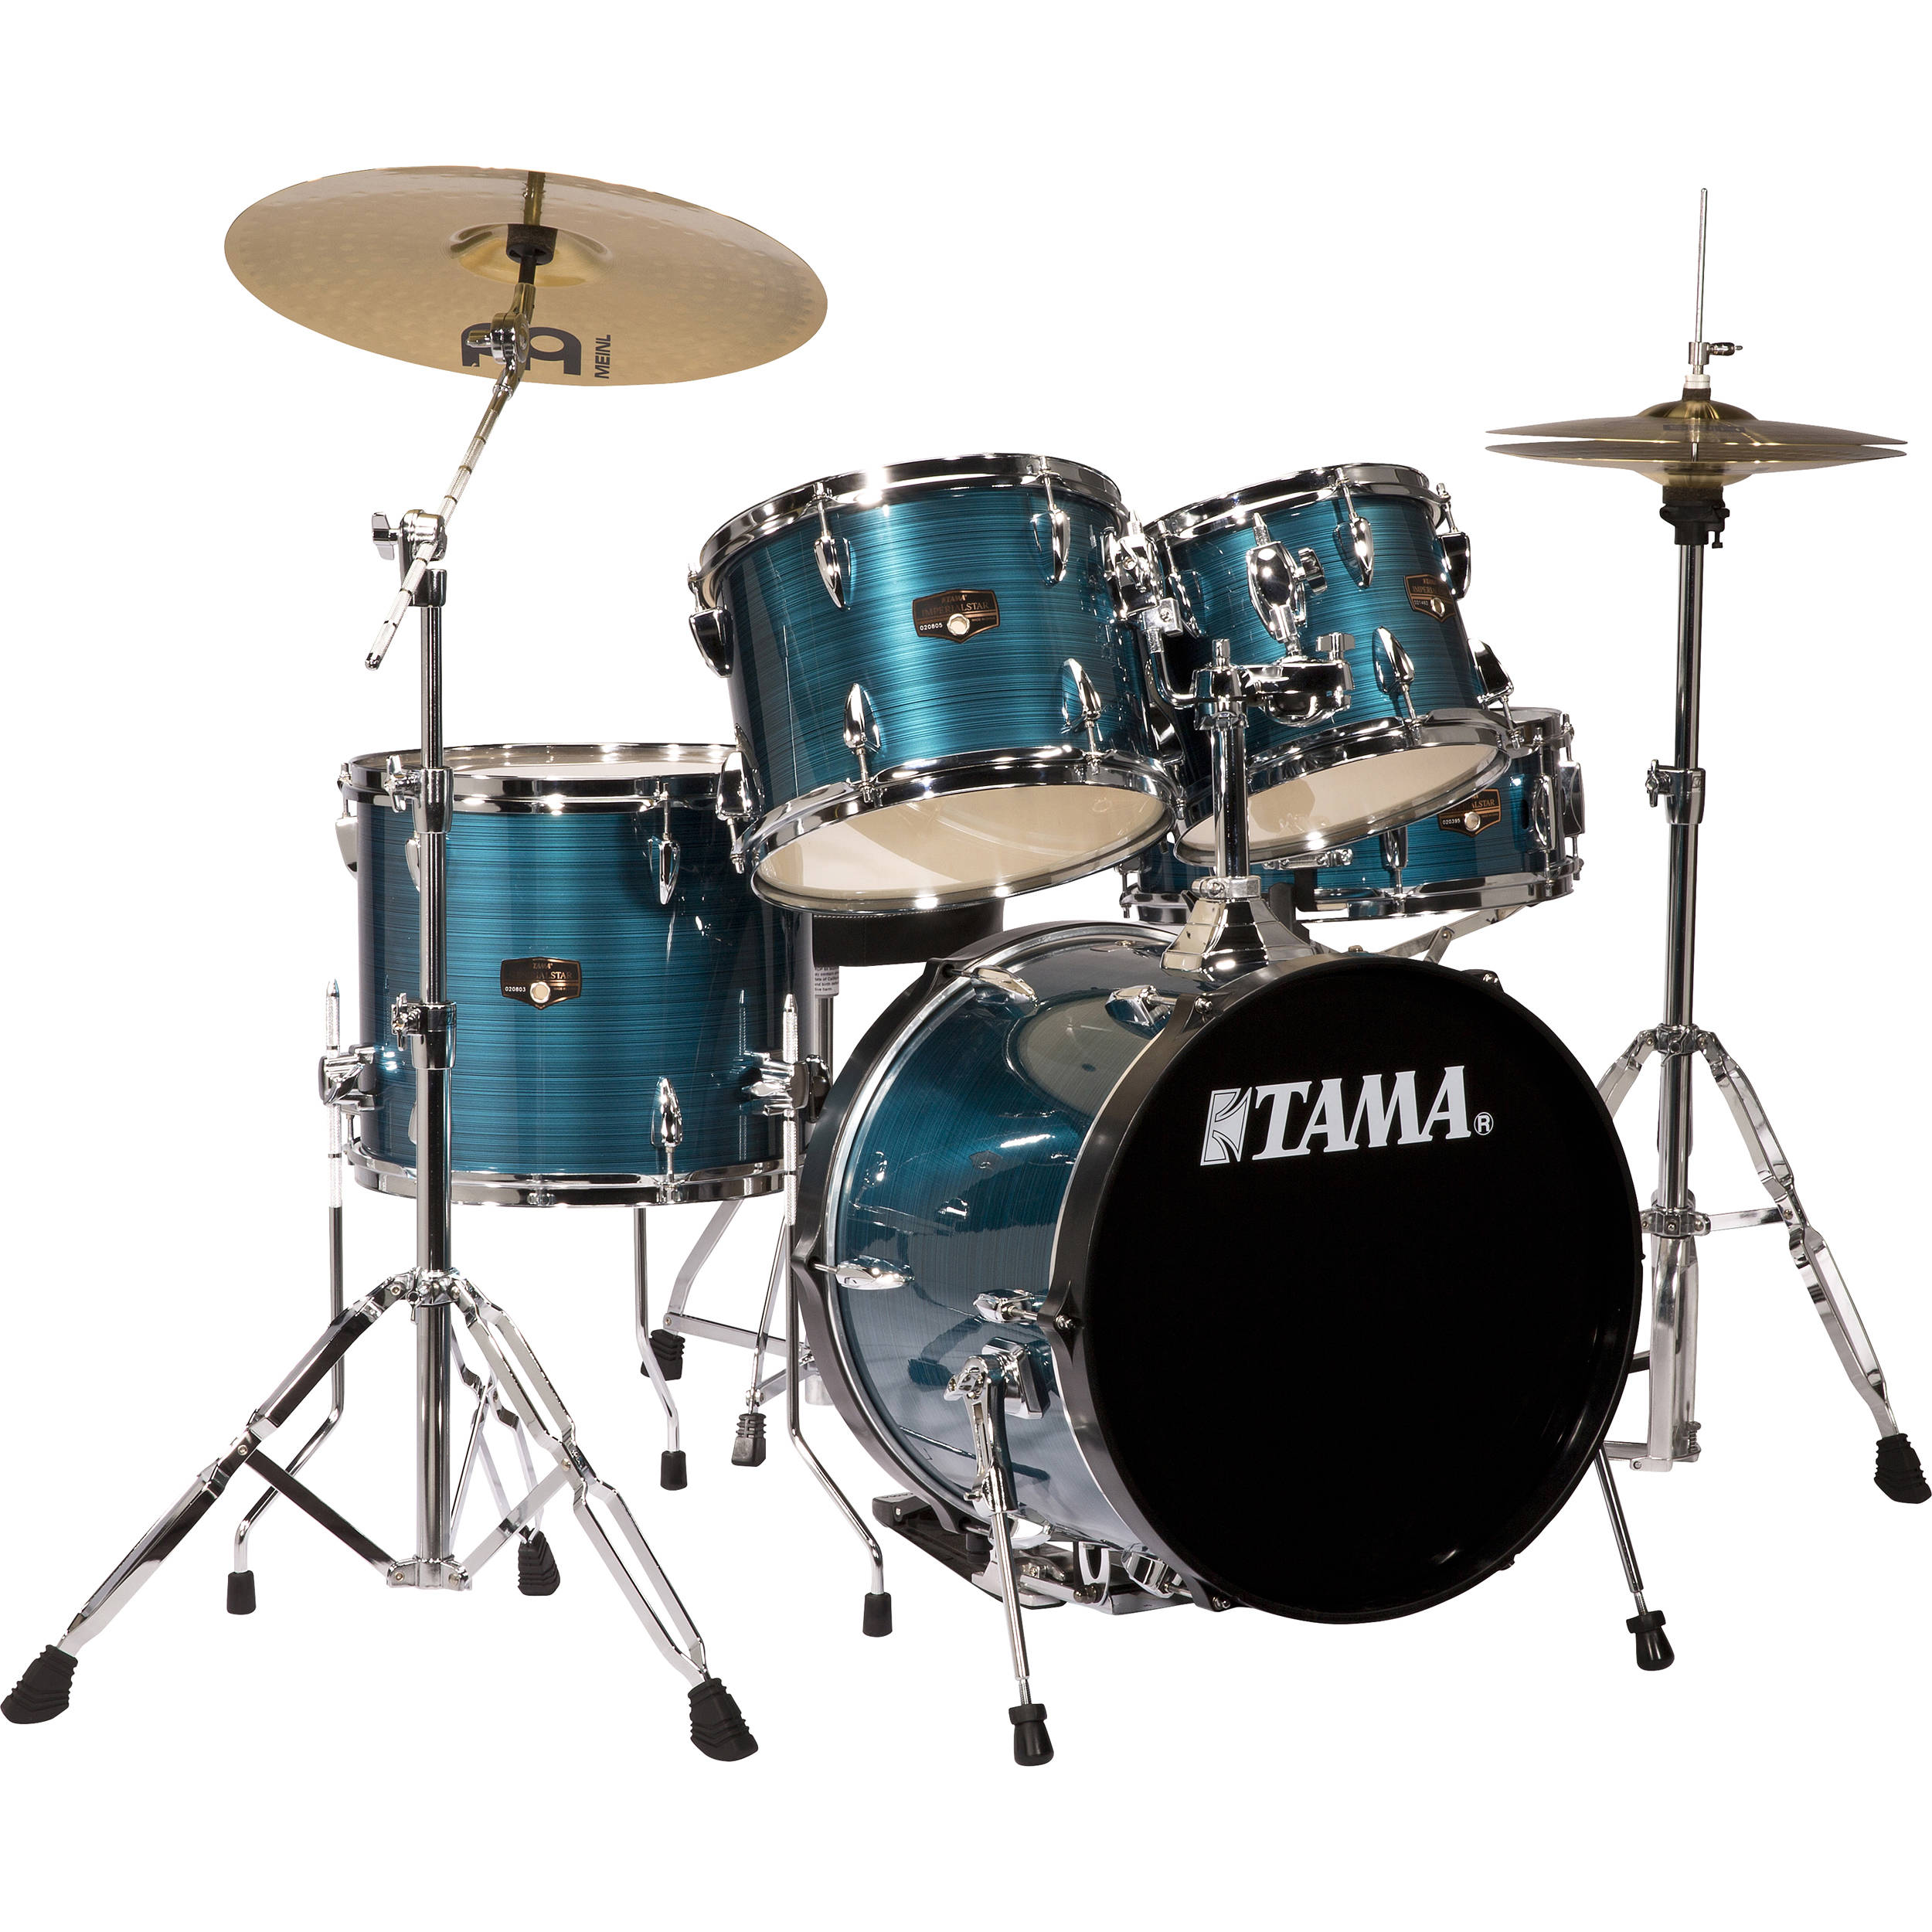 tama ip58chlb imperialstar 5 piece drum set with cymbals. Black Bedroom Furniture Sets. Home Design Ideas